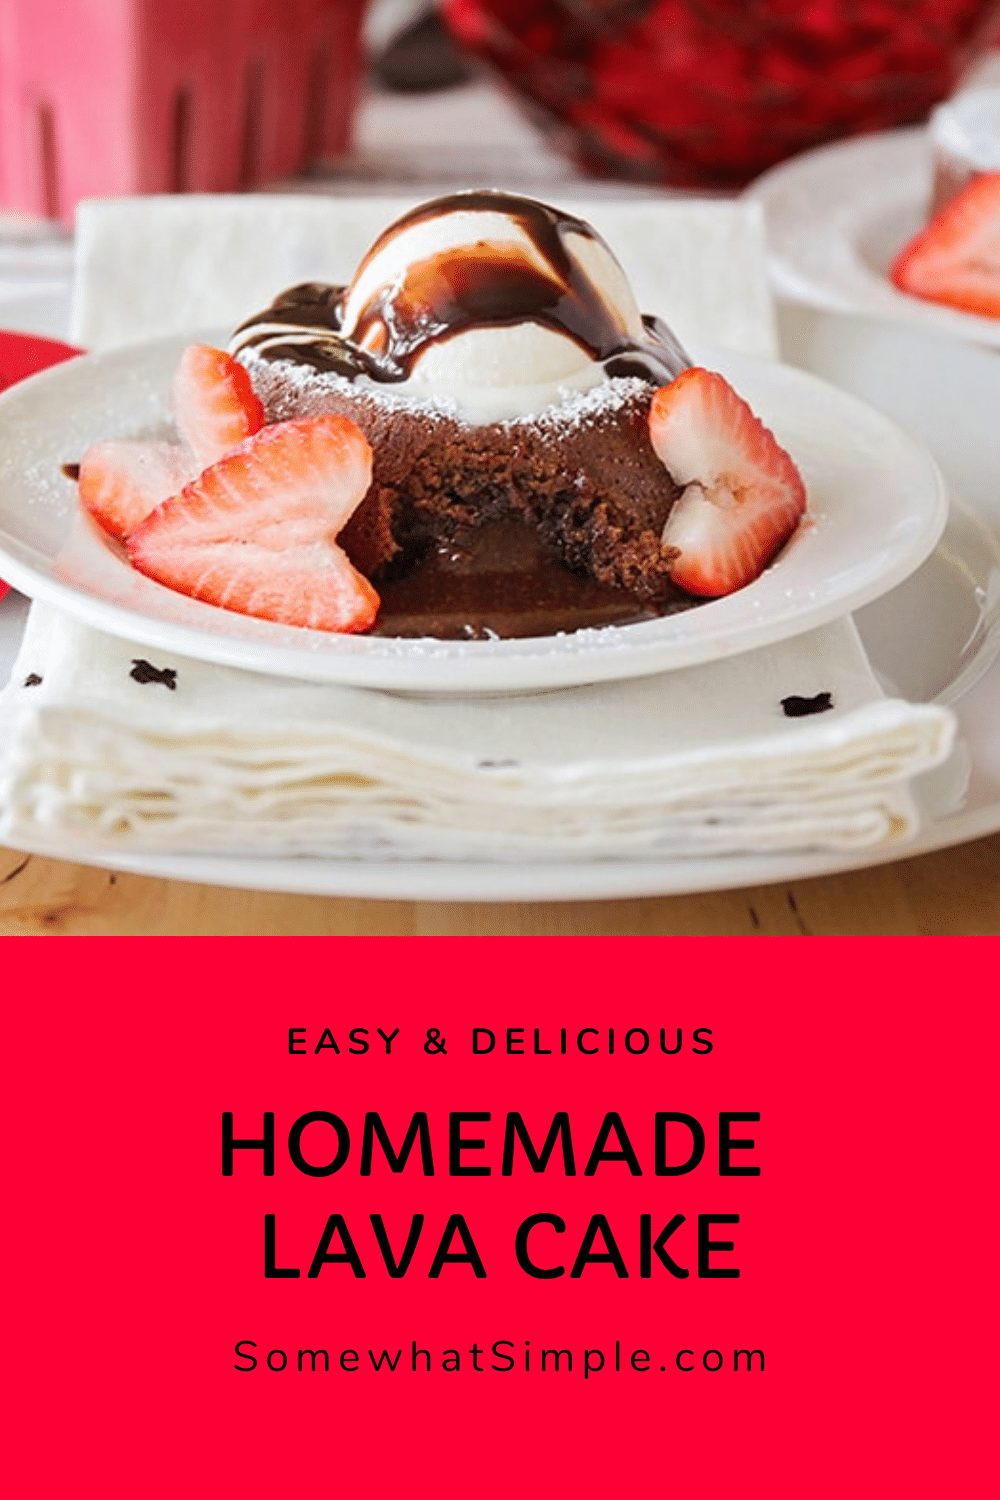 Simple, classy and totally delicious, this chocolate molten lava cake recipeis perfect for any special occasion, but easy enough for every day. Add in a few heart-shaped strawberries and this easy dessert recipe is perfect for an anniversary celebration or other romantic occasion. via @somewhatsimple